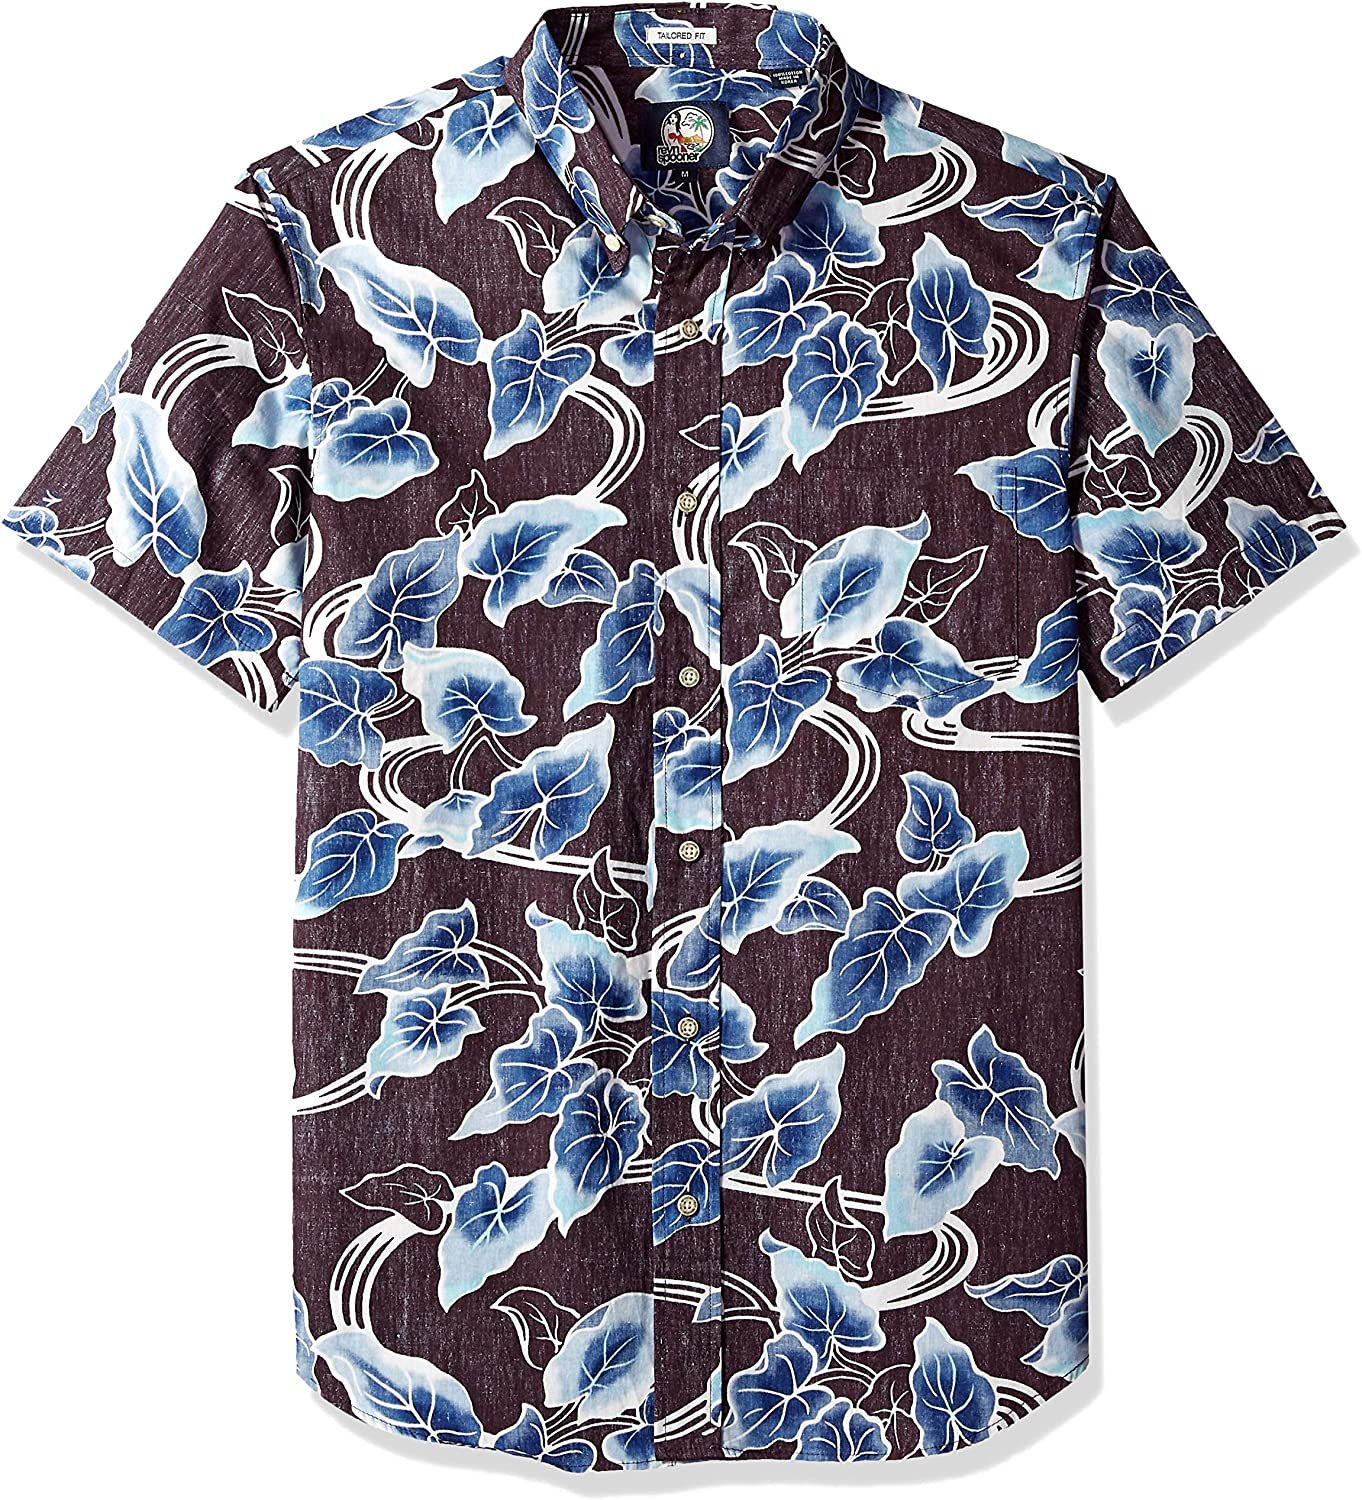 Reyn Spooner Men's Food & Wine Tailored Fit Hawaiian Shirt